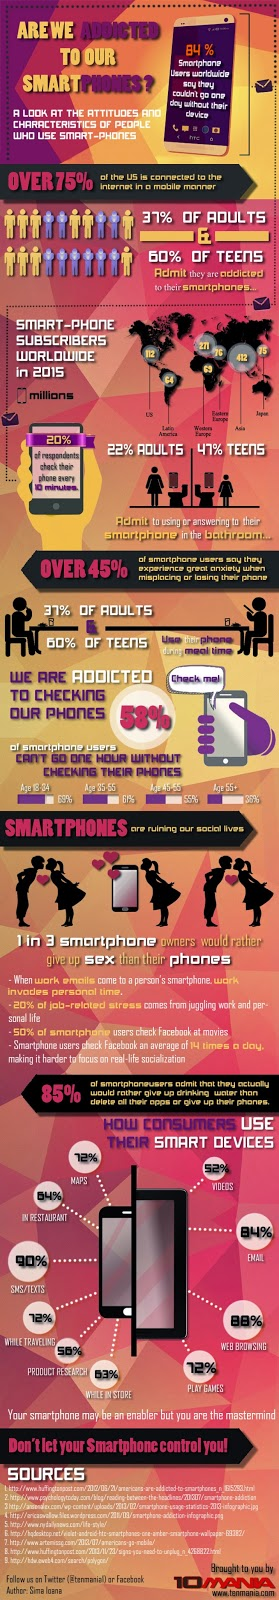 Are we addicted to smartphones?